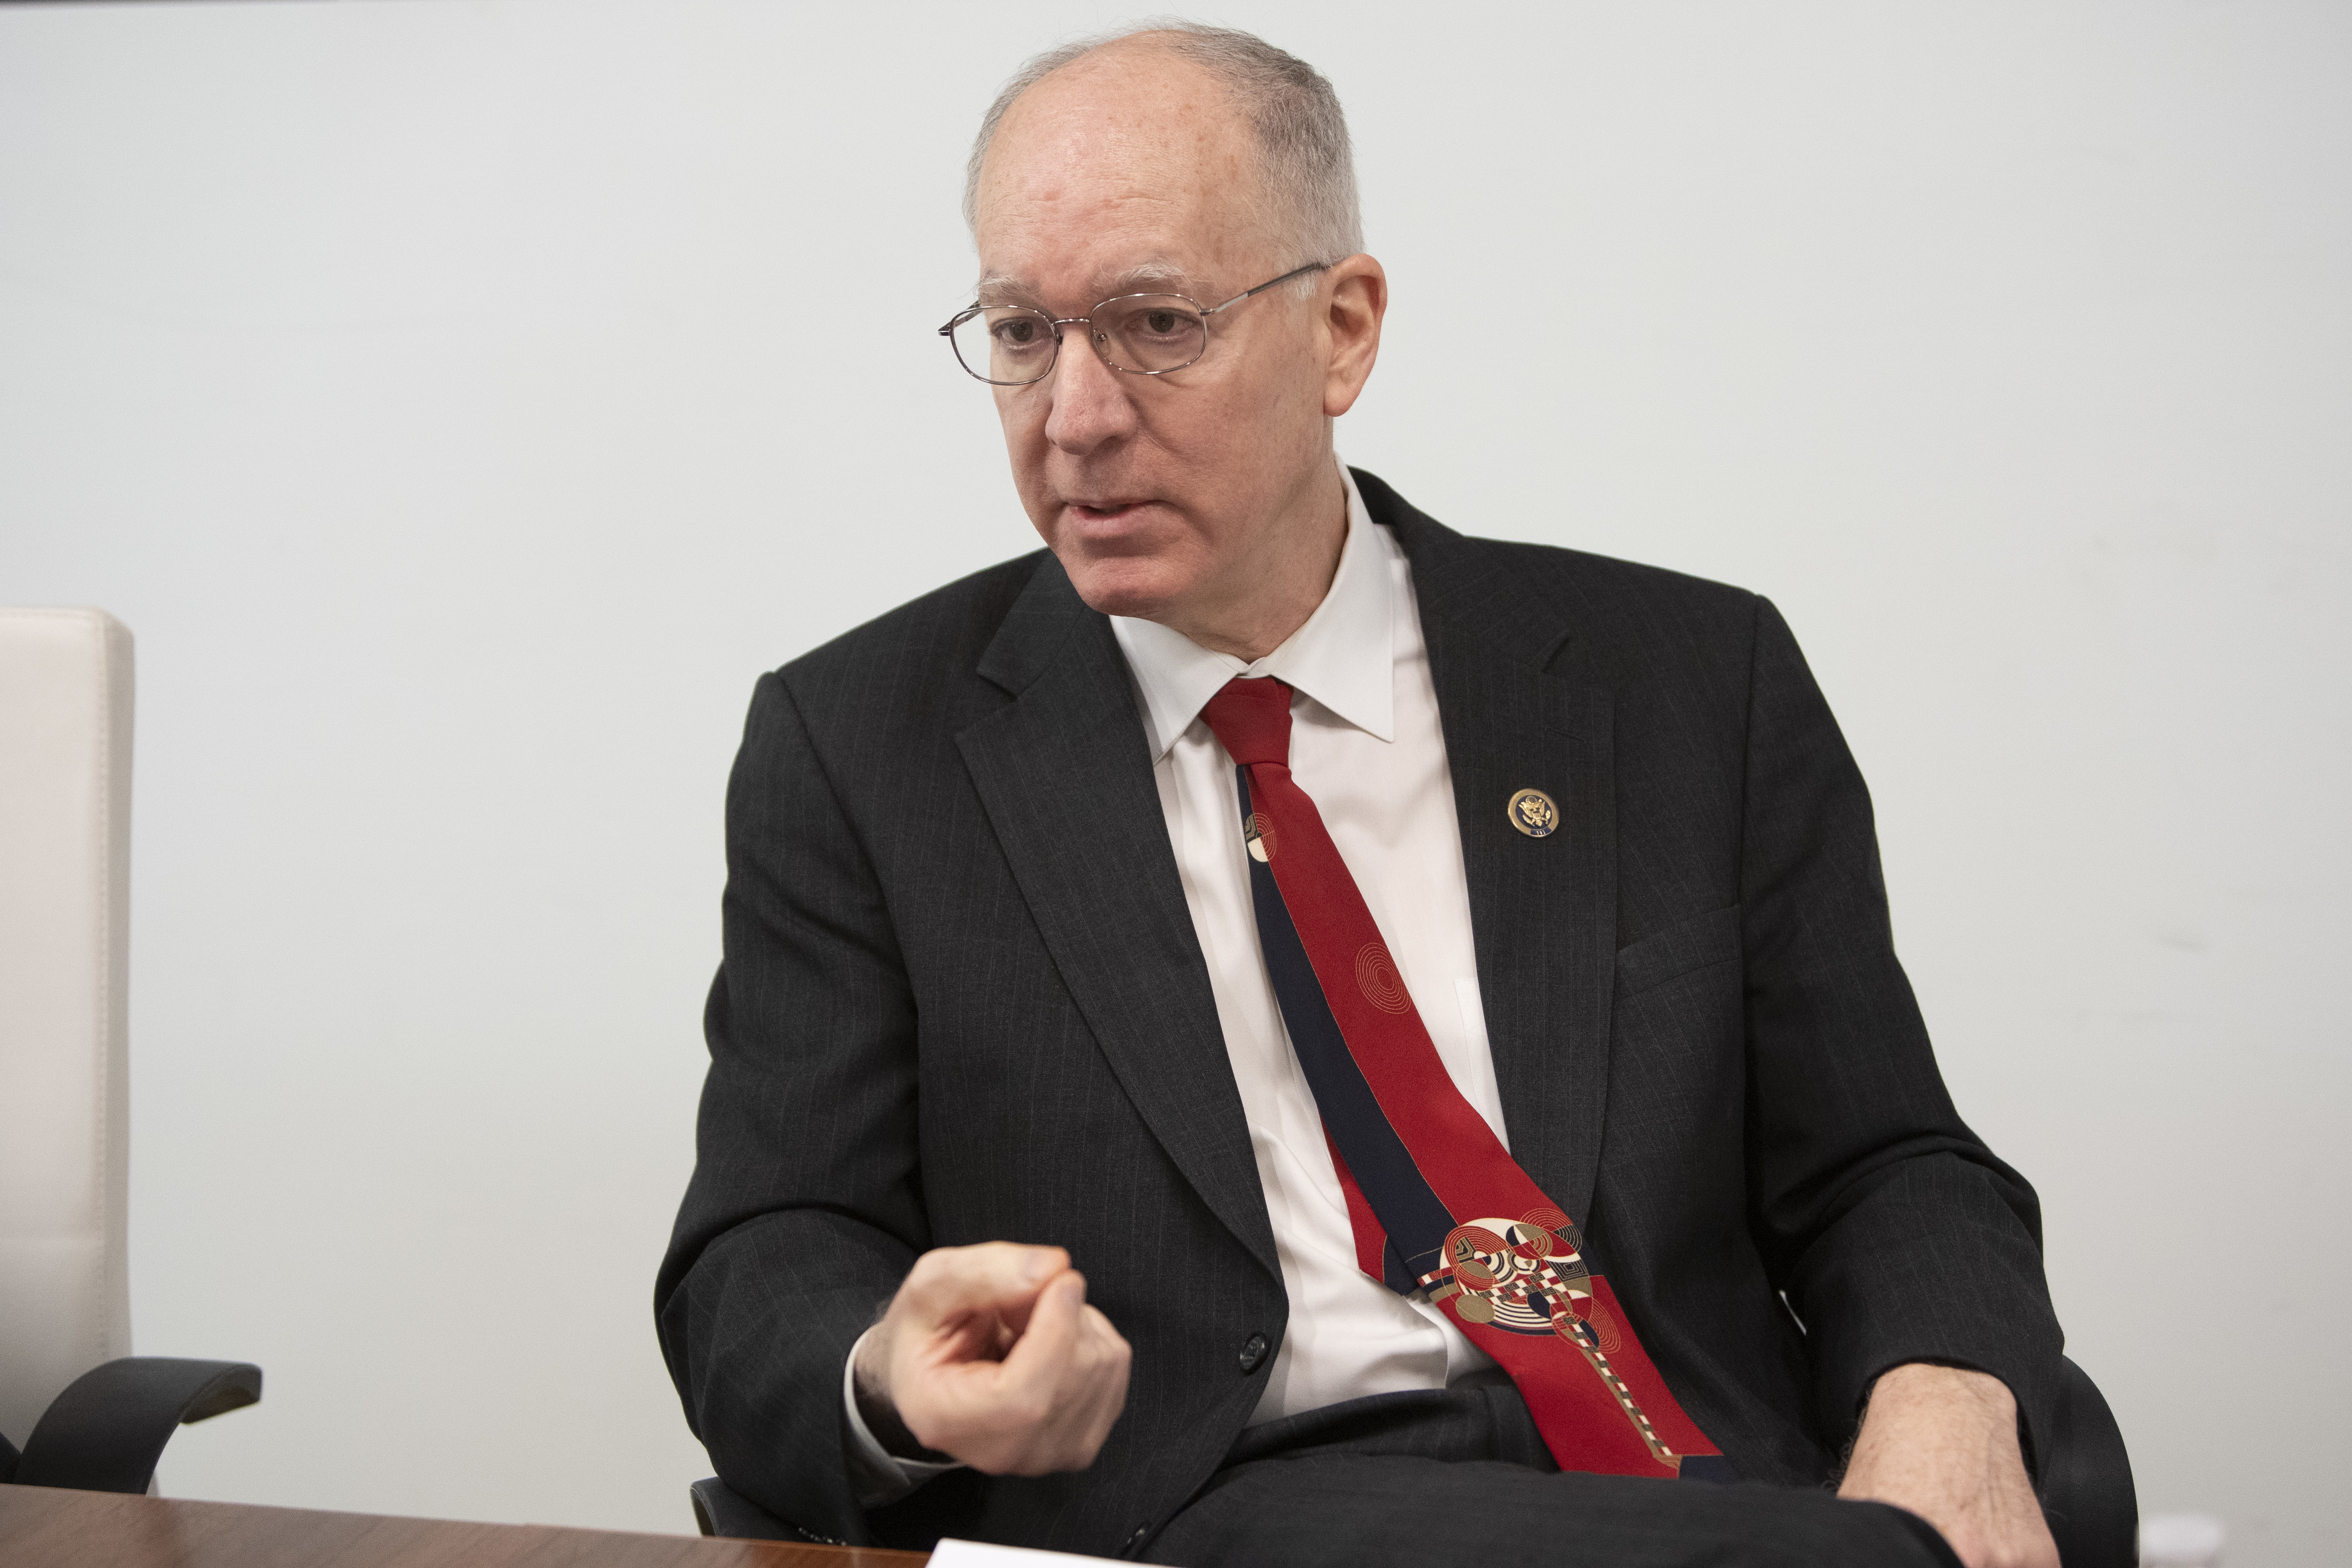 Bill Foster, 11th Congressional District Democratic nominee and incumbent, 2020